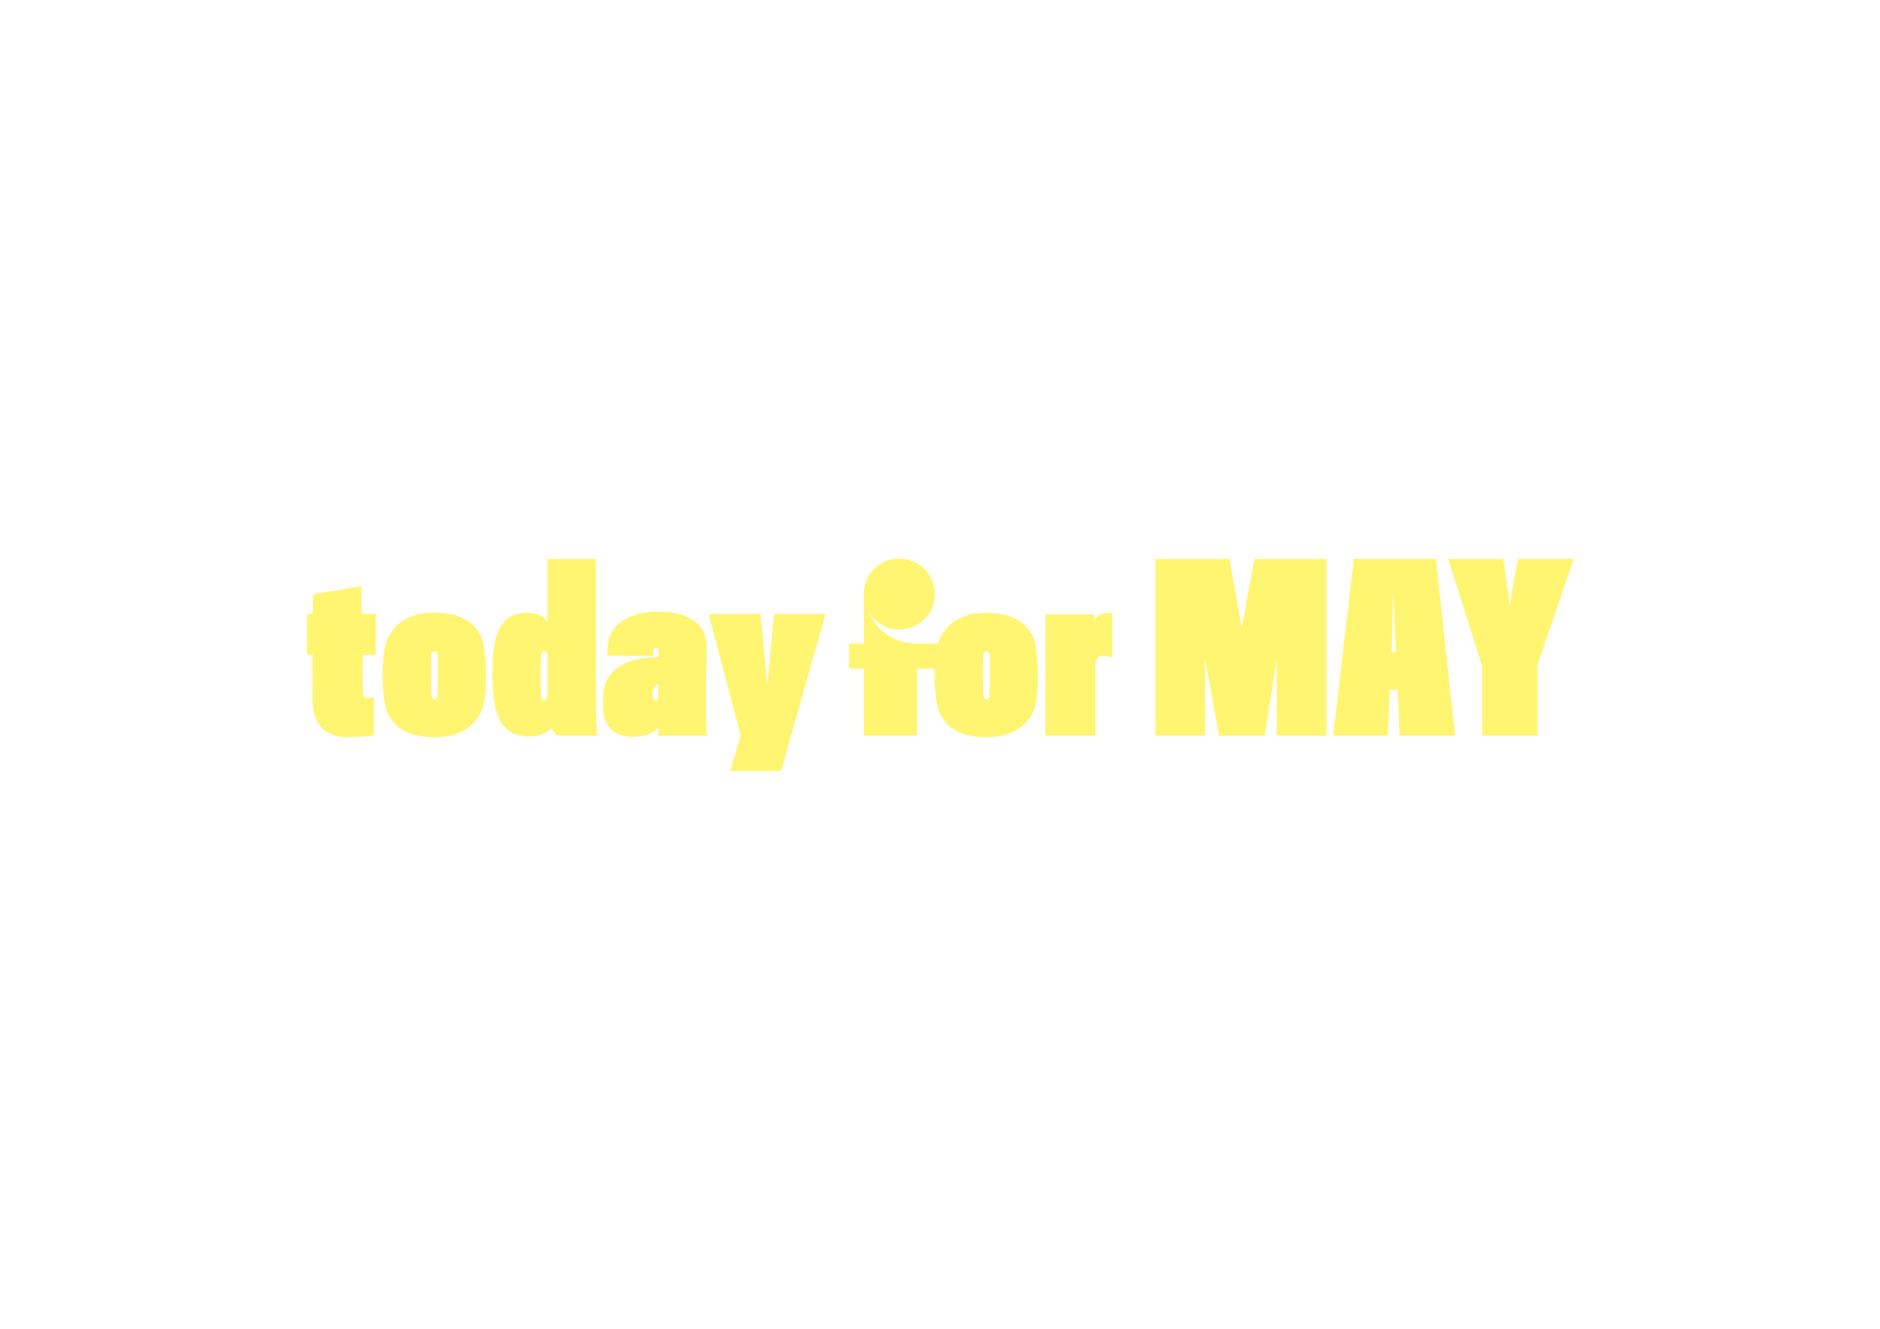 today for MAY